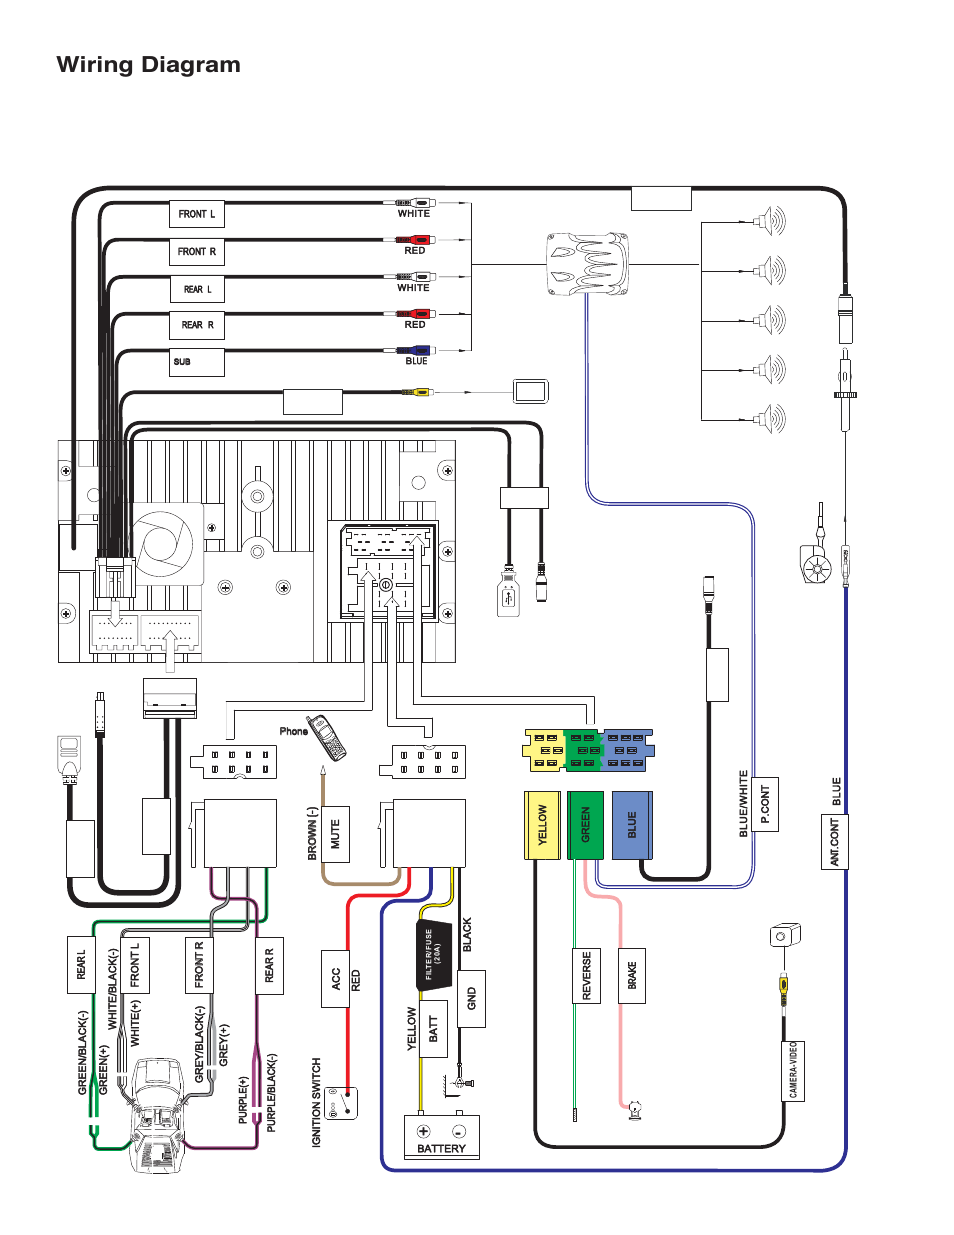 small resolution of viper 5900 wiring diagram car alarm installation wiring diagrams jensen vm9224 page4 resize 665 2c861